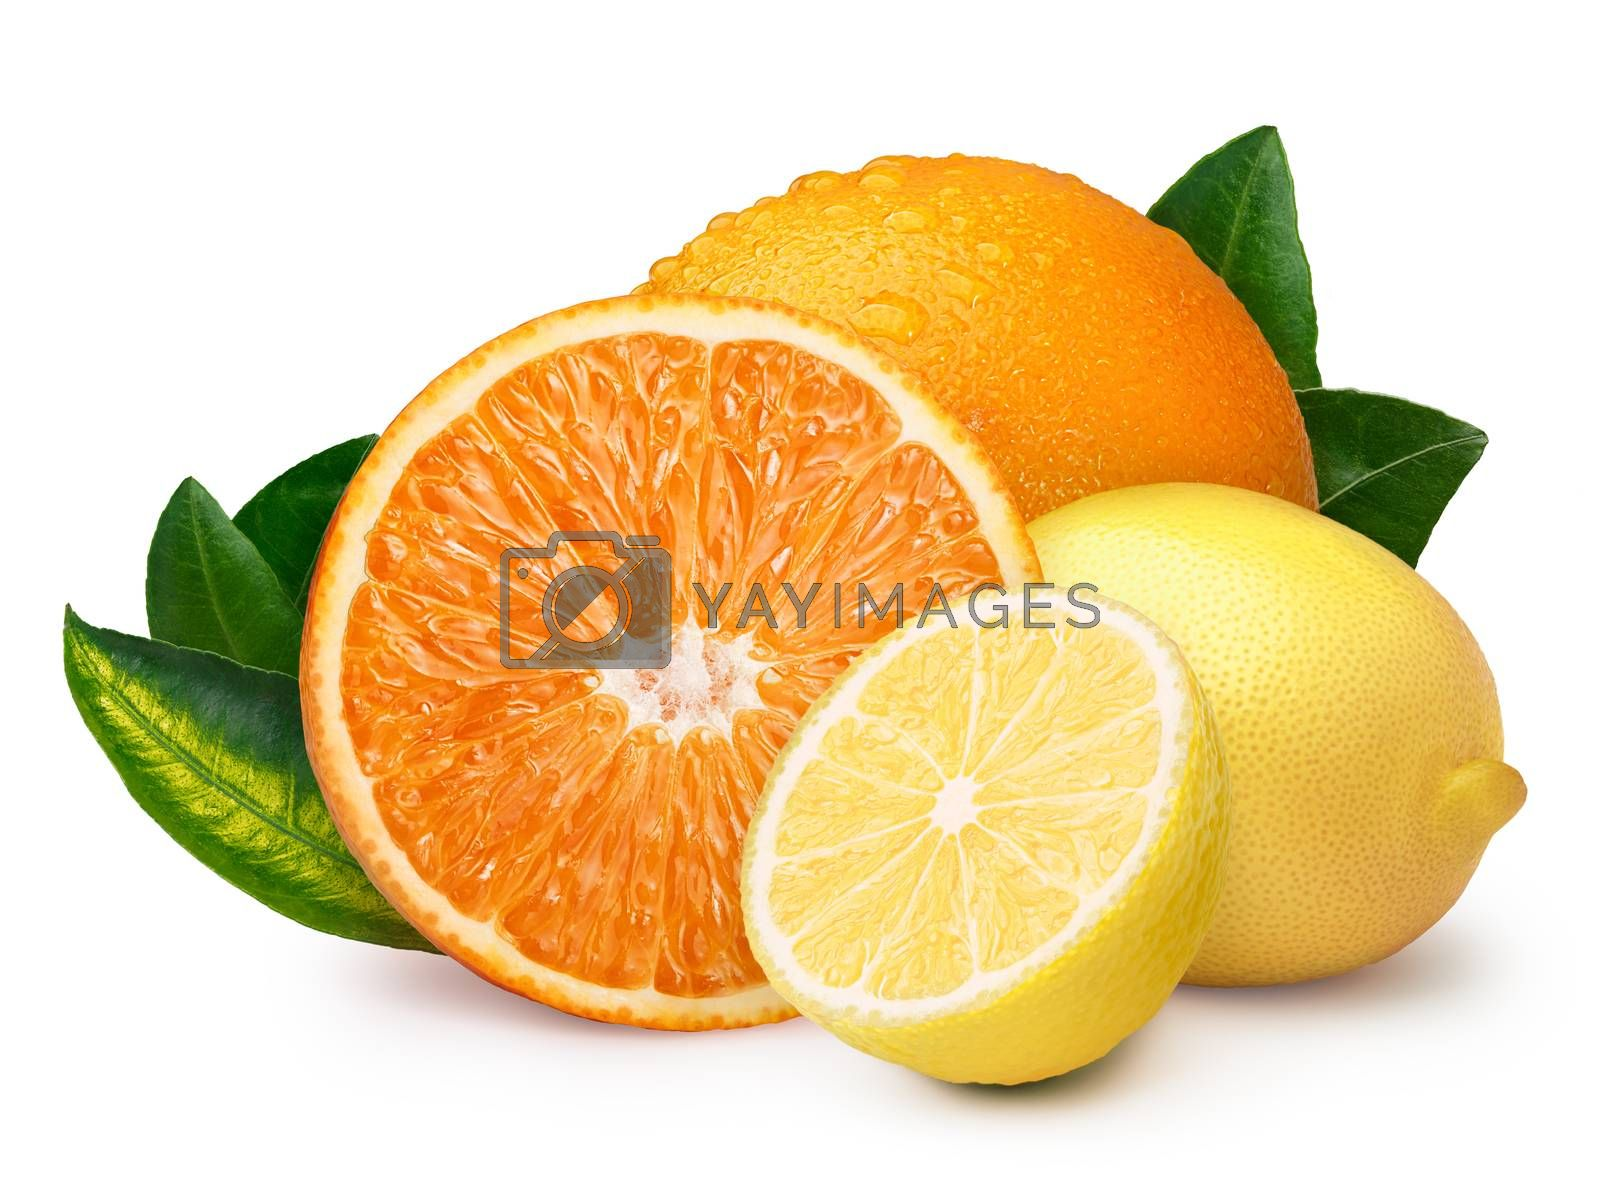 Whole and halved lemon with orange. Clipping paths, infinite depth of field. Citrus fruits